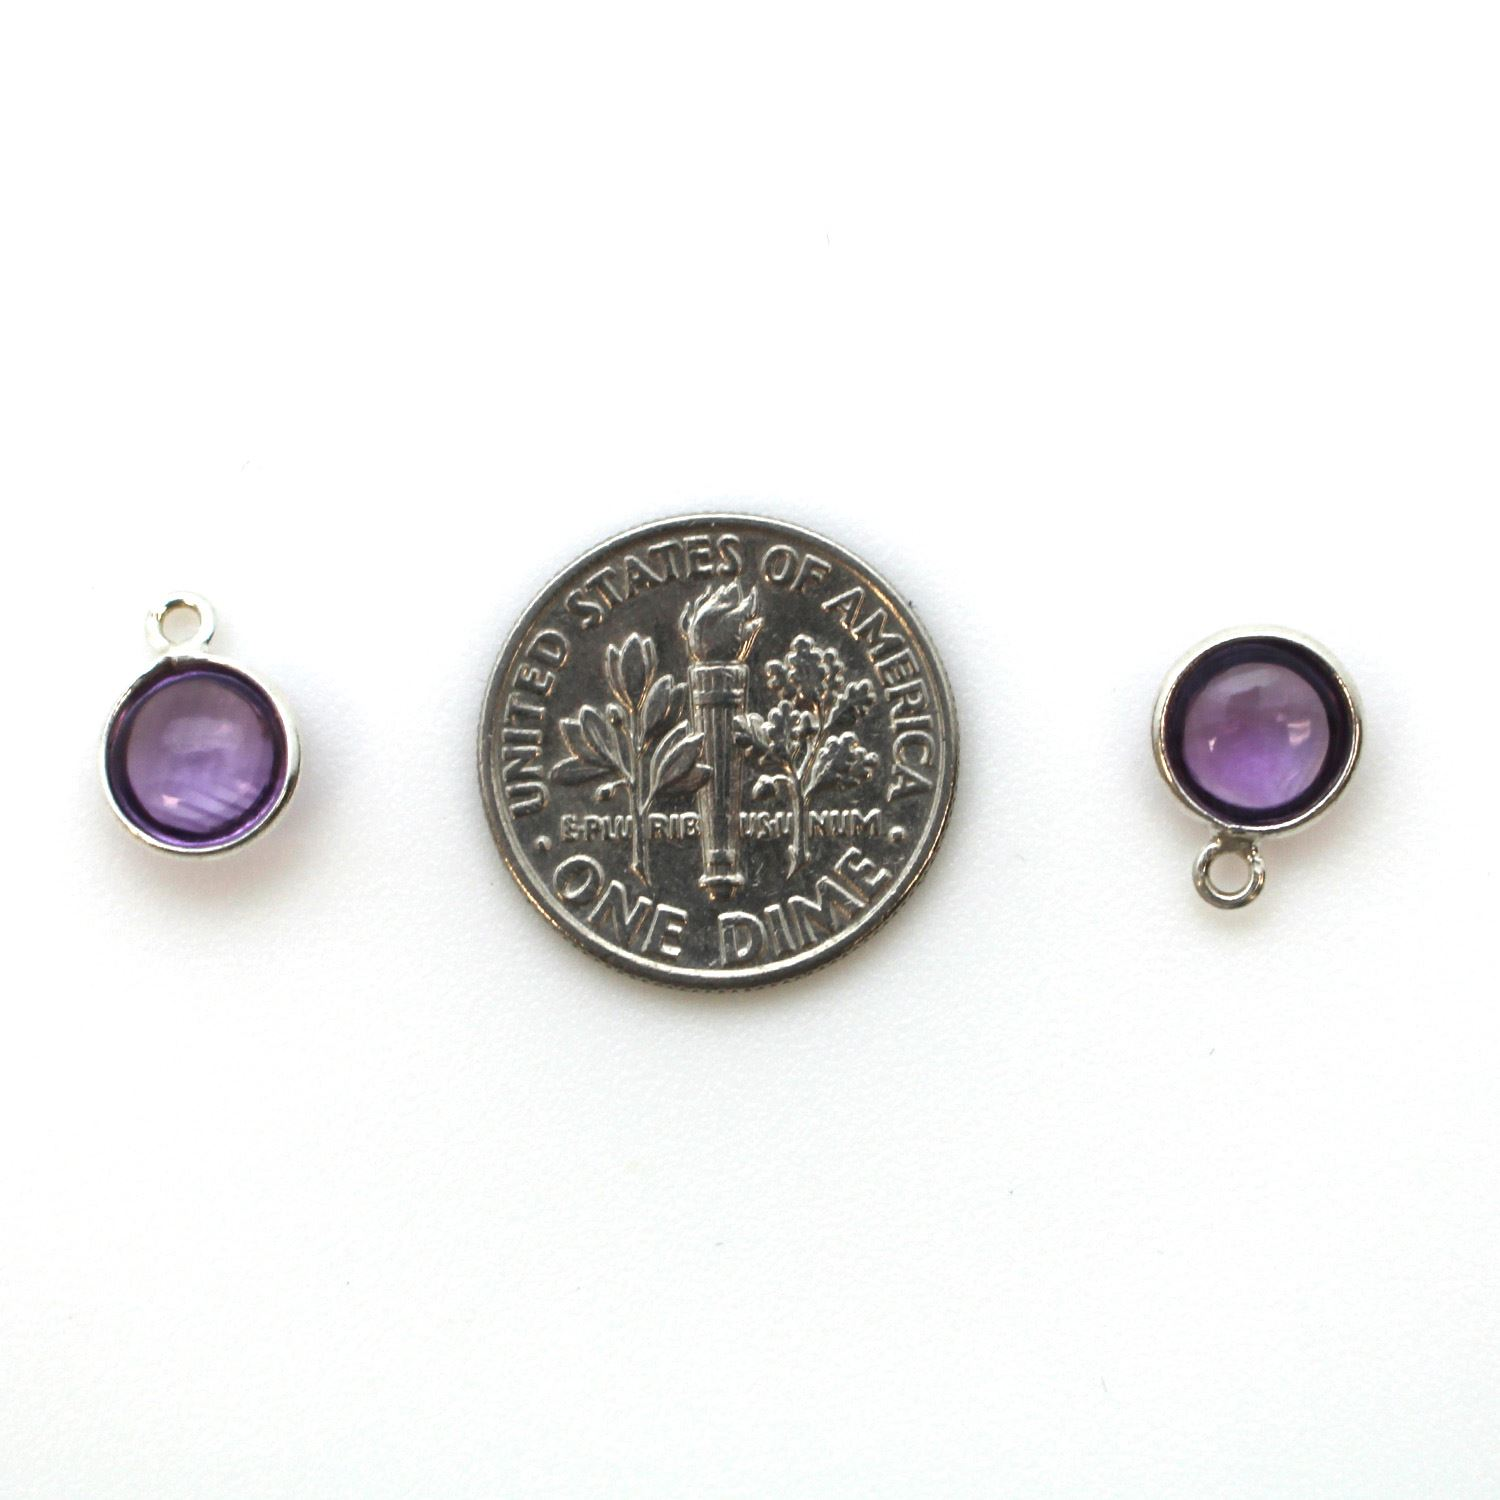 Bezel Charm Pendant - Sterling Silver Charm - Natural Amethyst -Tiny Round Shape